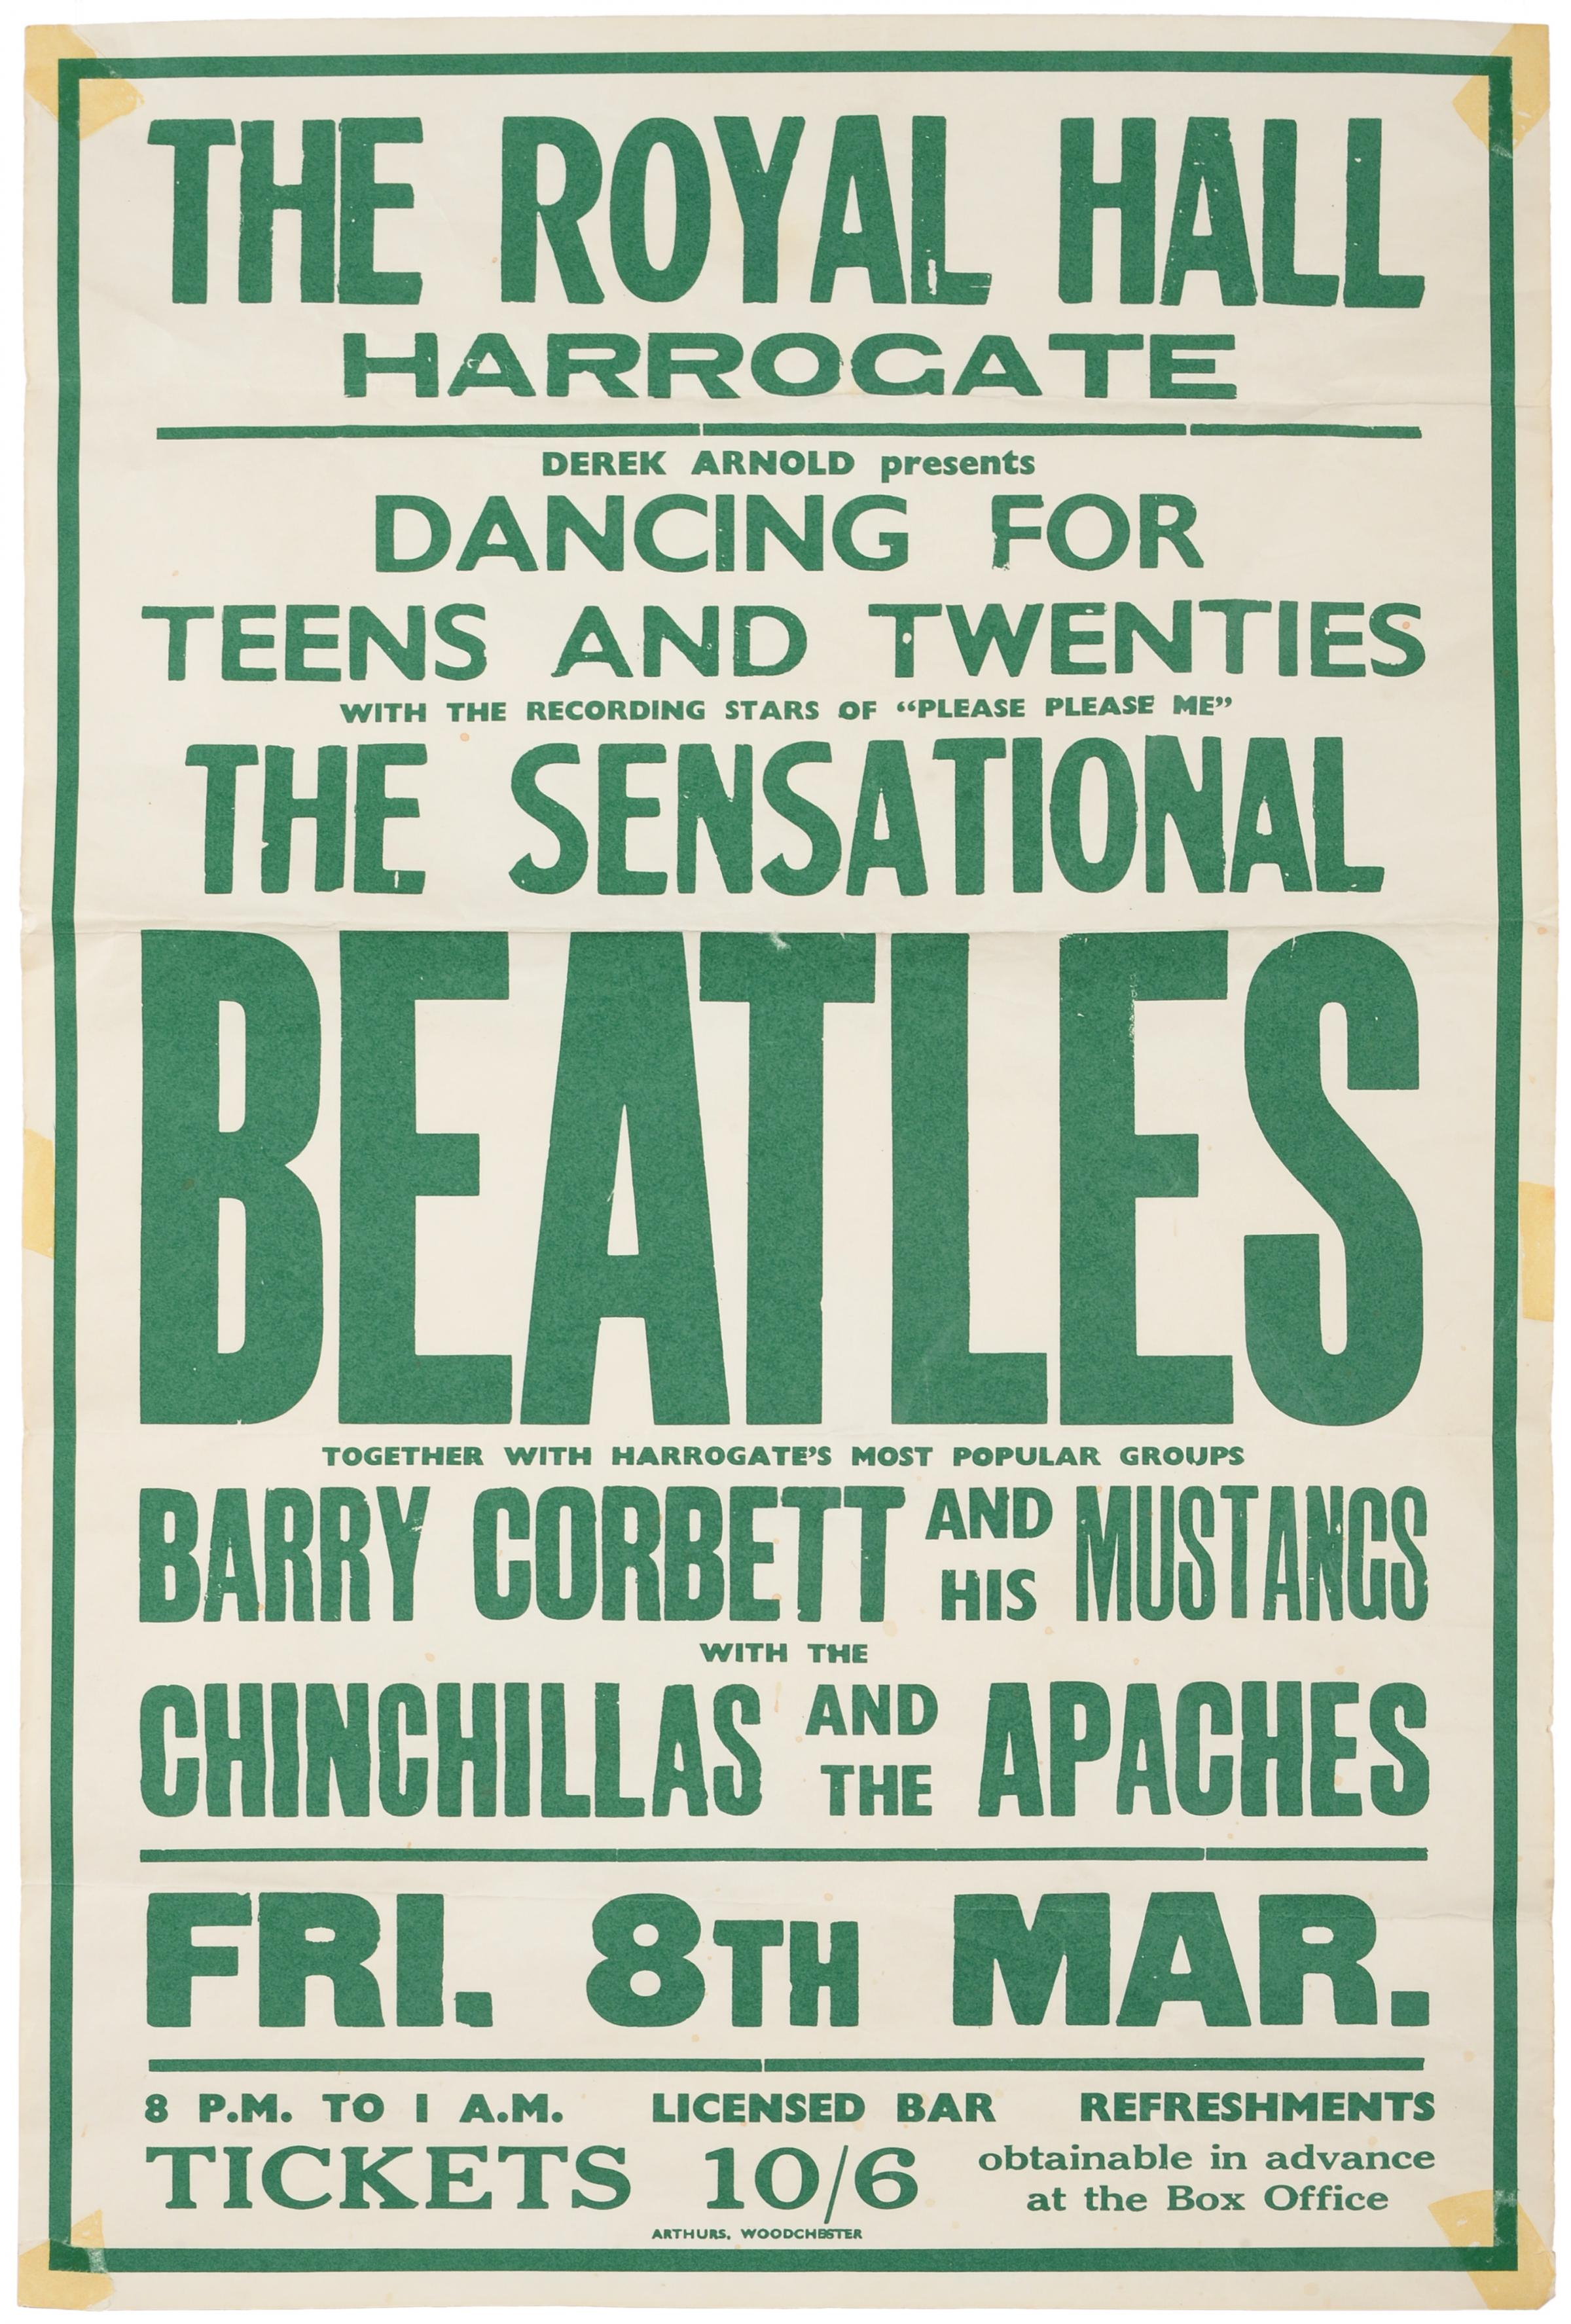 A RARE Poster Advertising Concert Staged By The Beatles In North Yorkshire Just As They Were Becoming Famous Has Attracted Remarkable Number Of